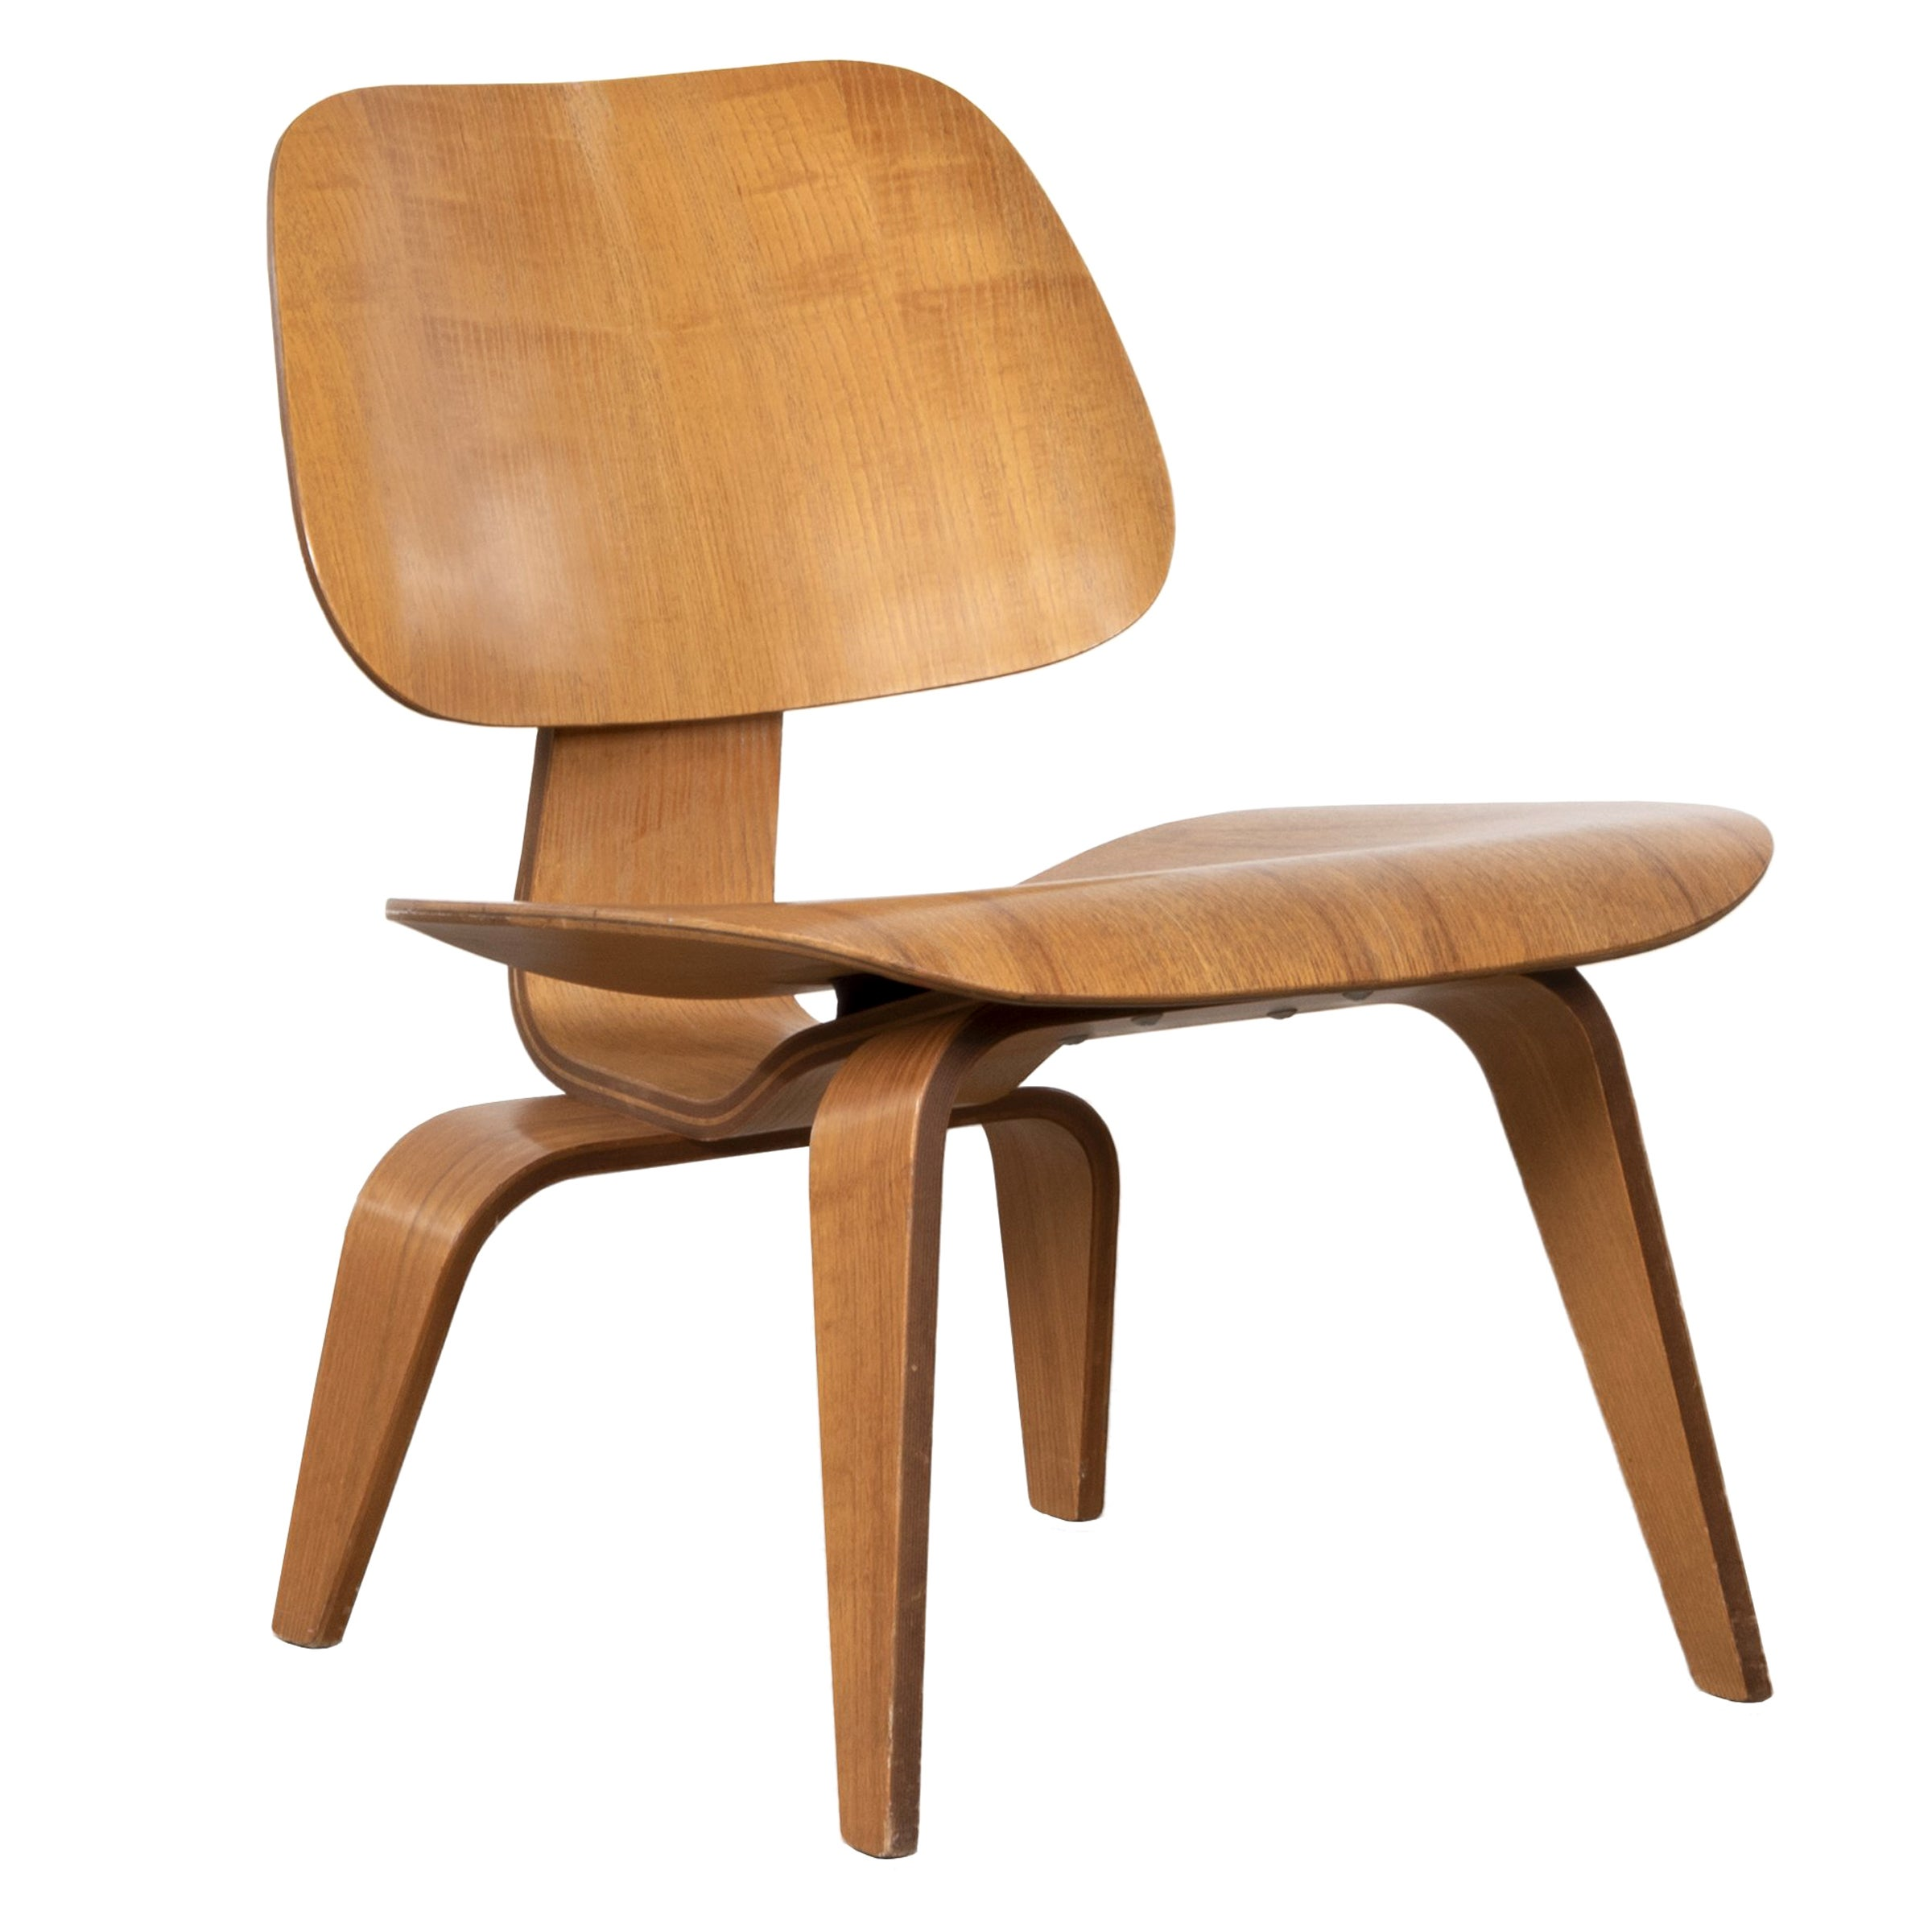 Charles And Ray Eames Lcw Ash Lounge Chair For Herman Miller 1951